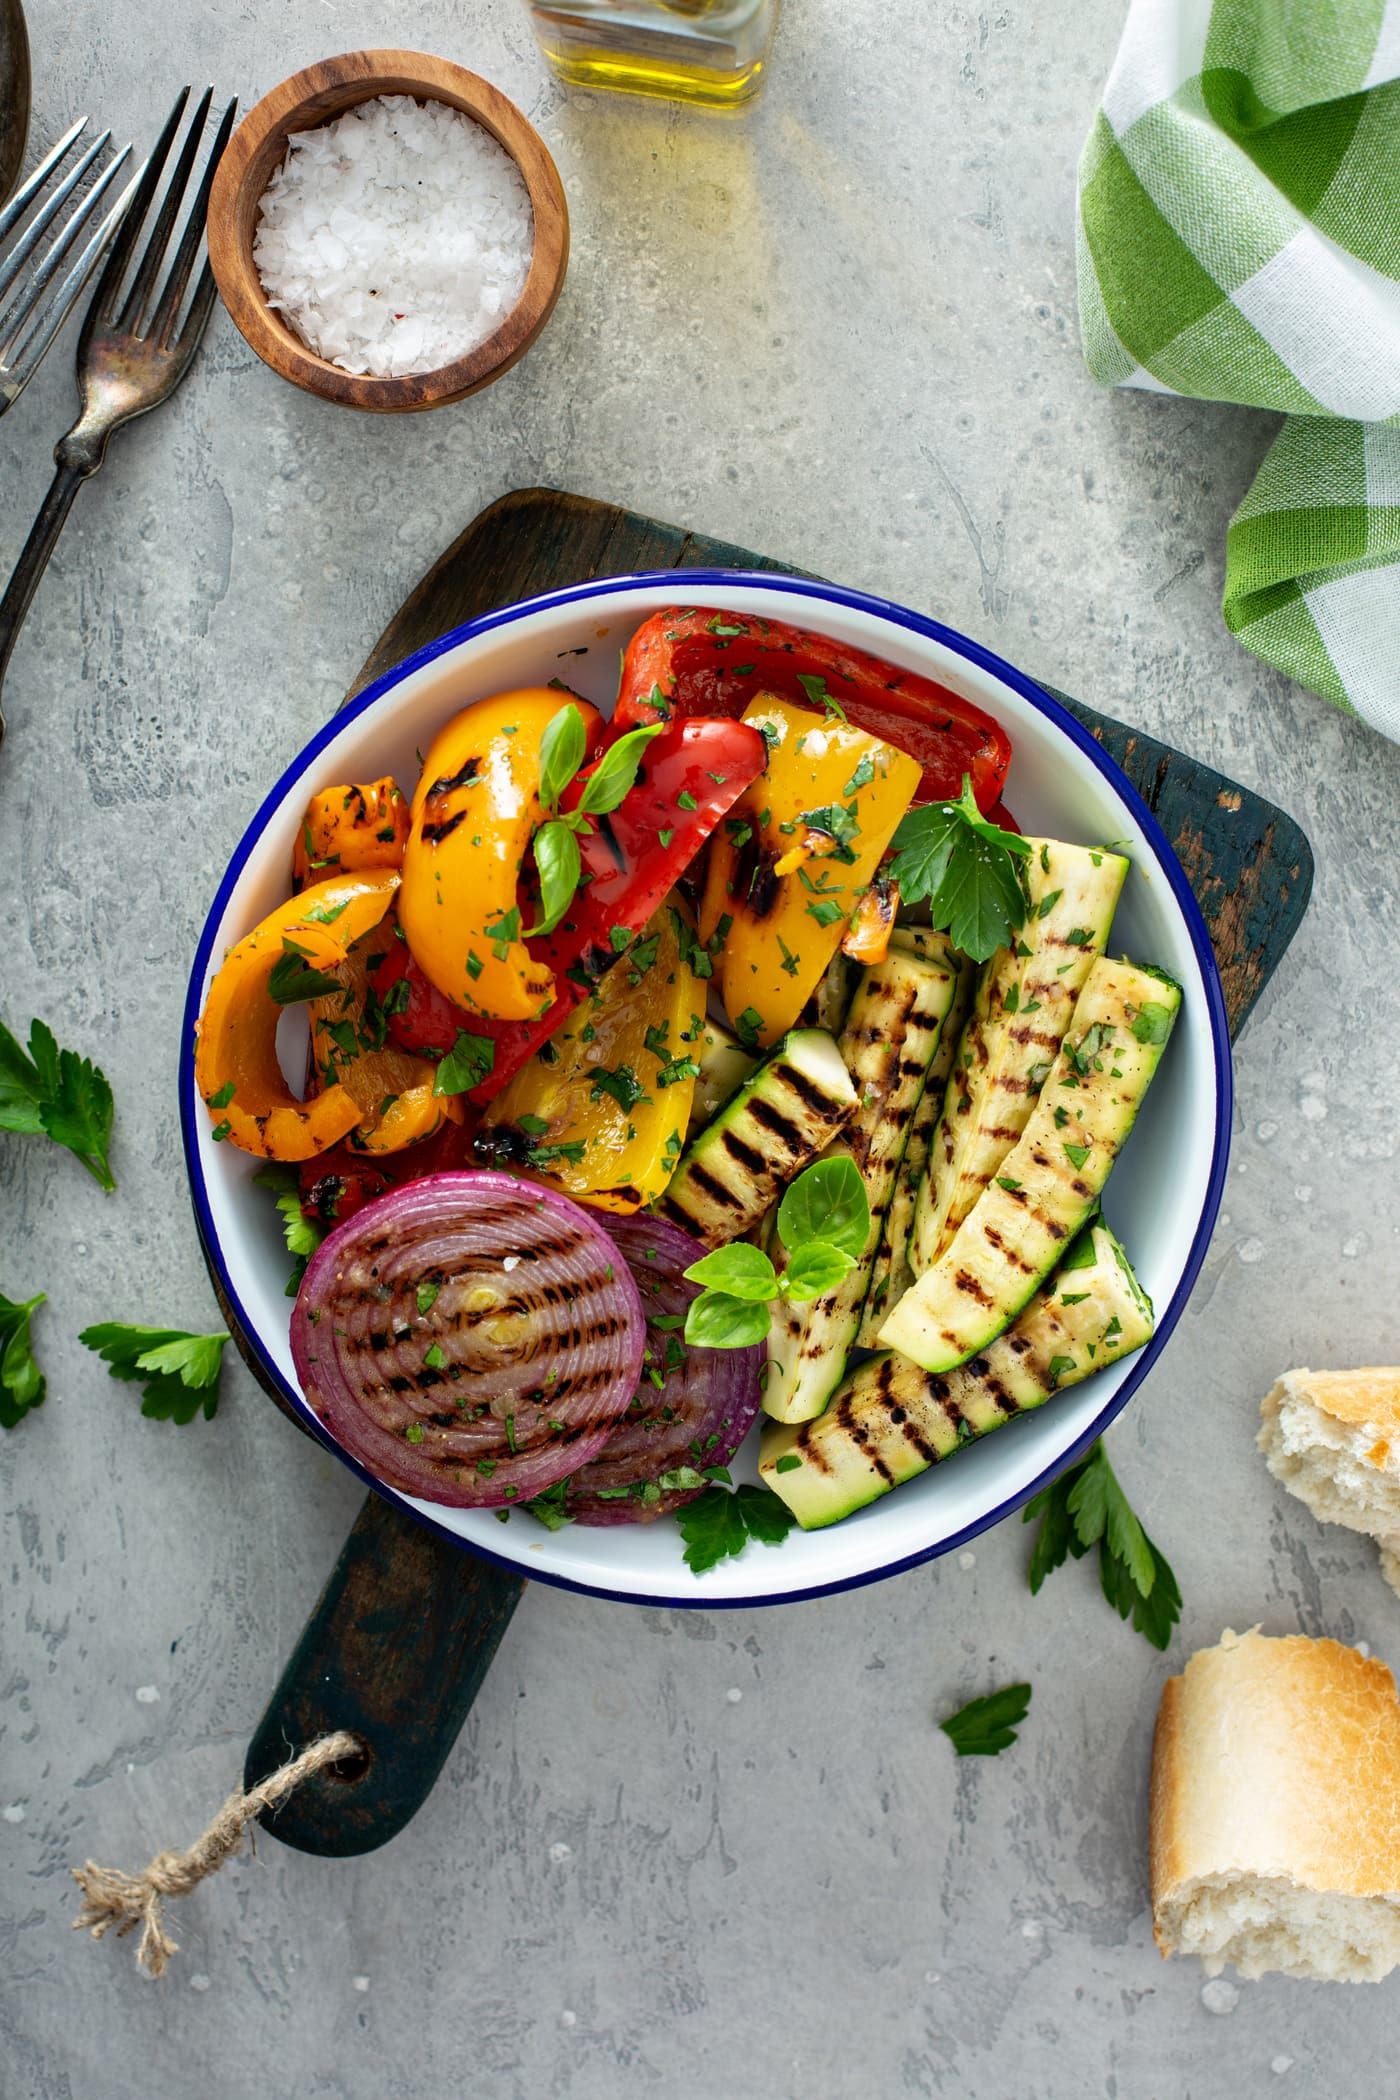 A serving plate of grilled vegetables sitting on a wooden cutting board. The grilled red onion, red and yellow bell peppers, and zucchini are topped with parsley leaves. A few parsley leaves are scattered on the table